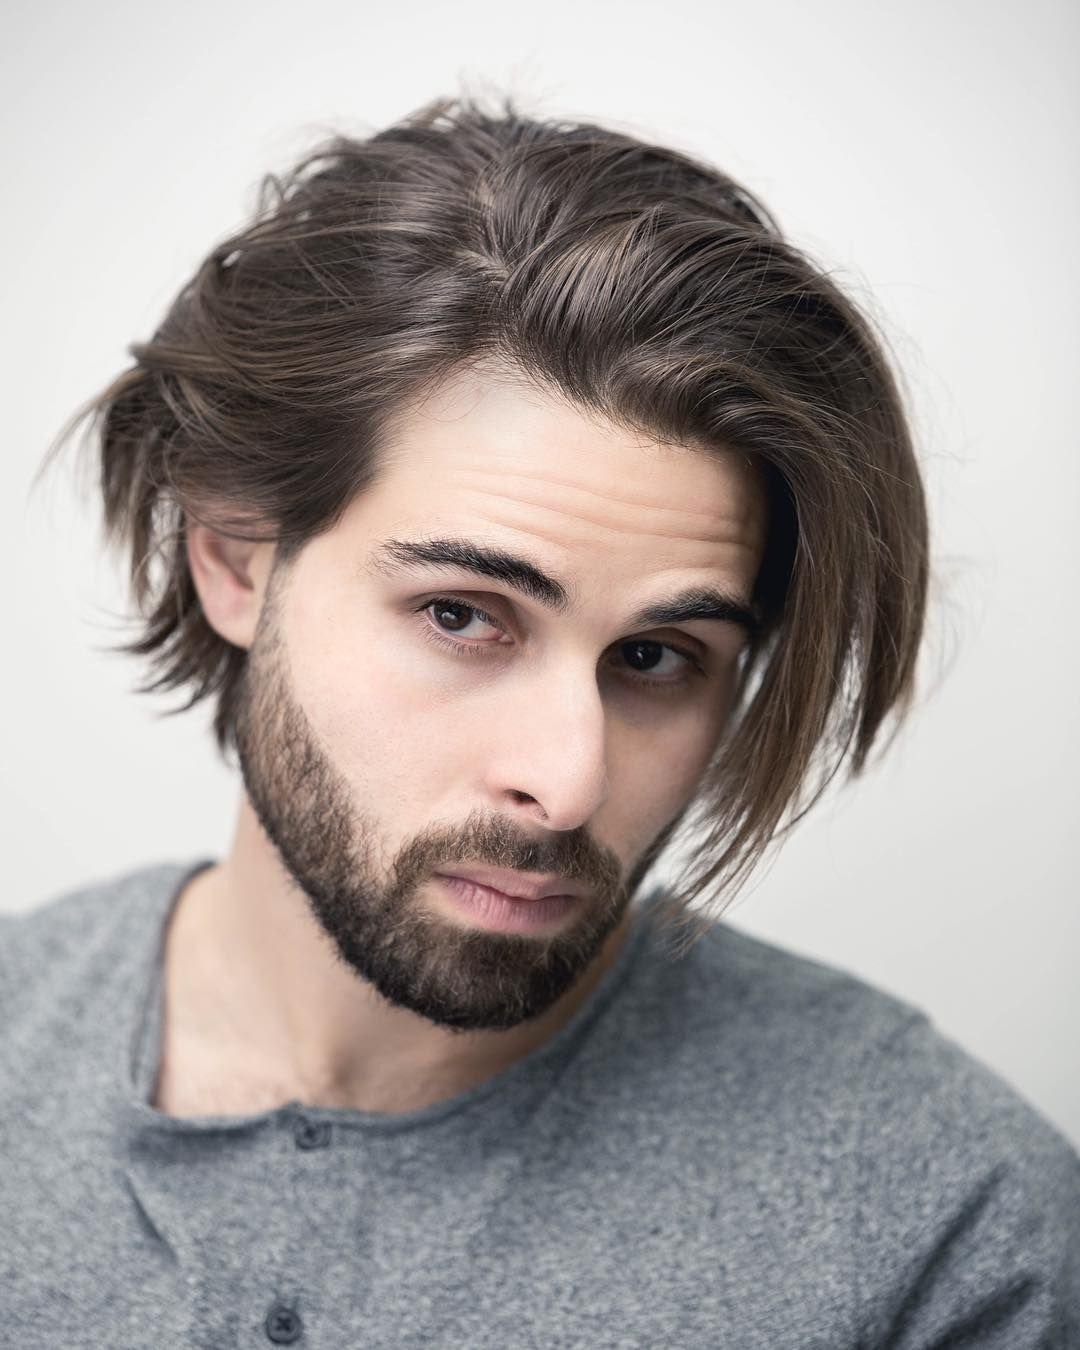 How To Grow Your Hair Out Men S Tutorial Growing Your Hair Out Shoulder Length Hair Men Grow Long Hair